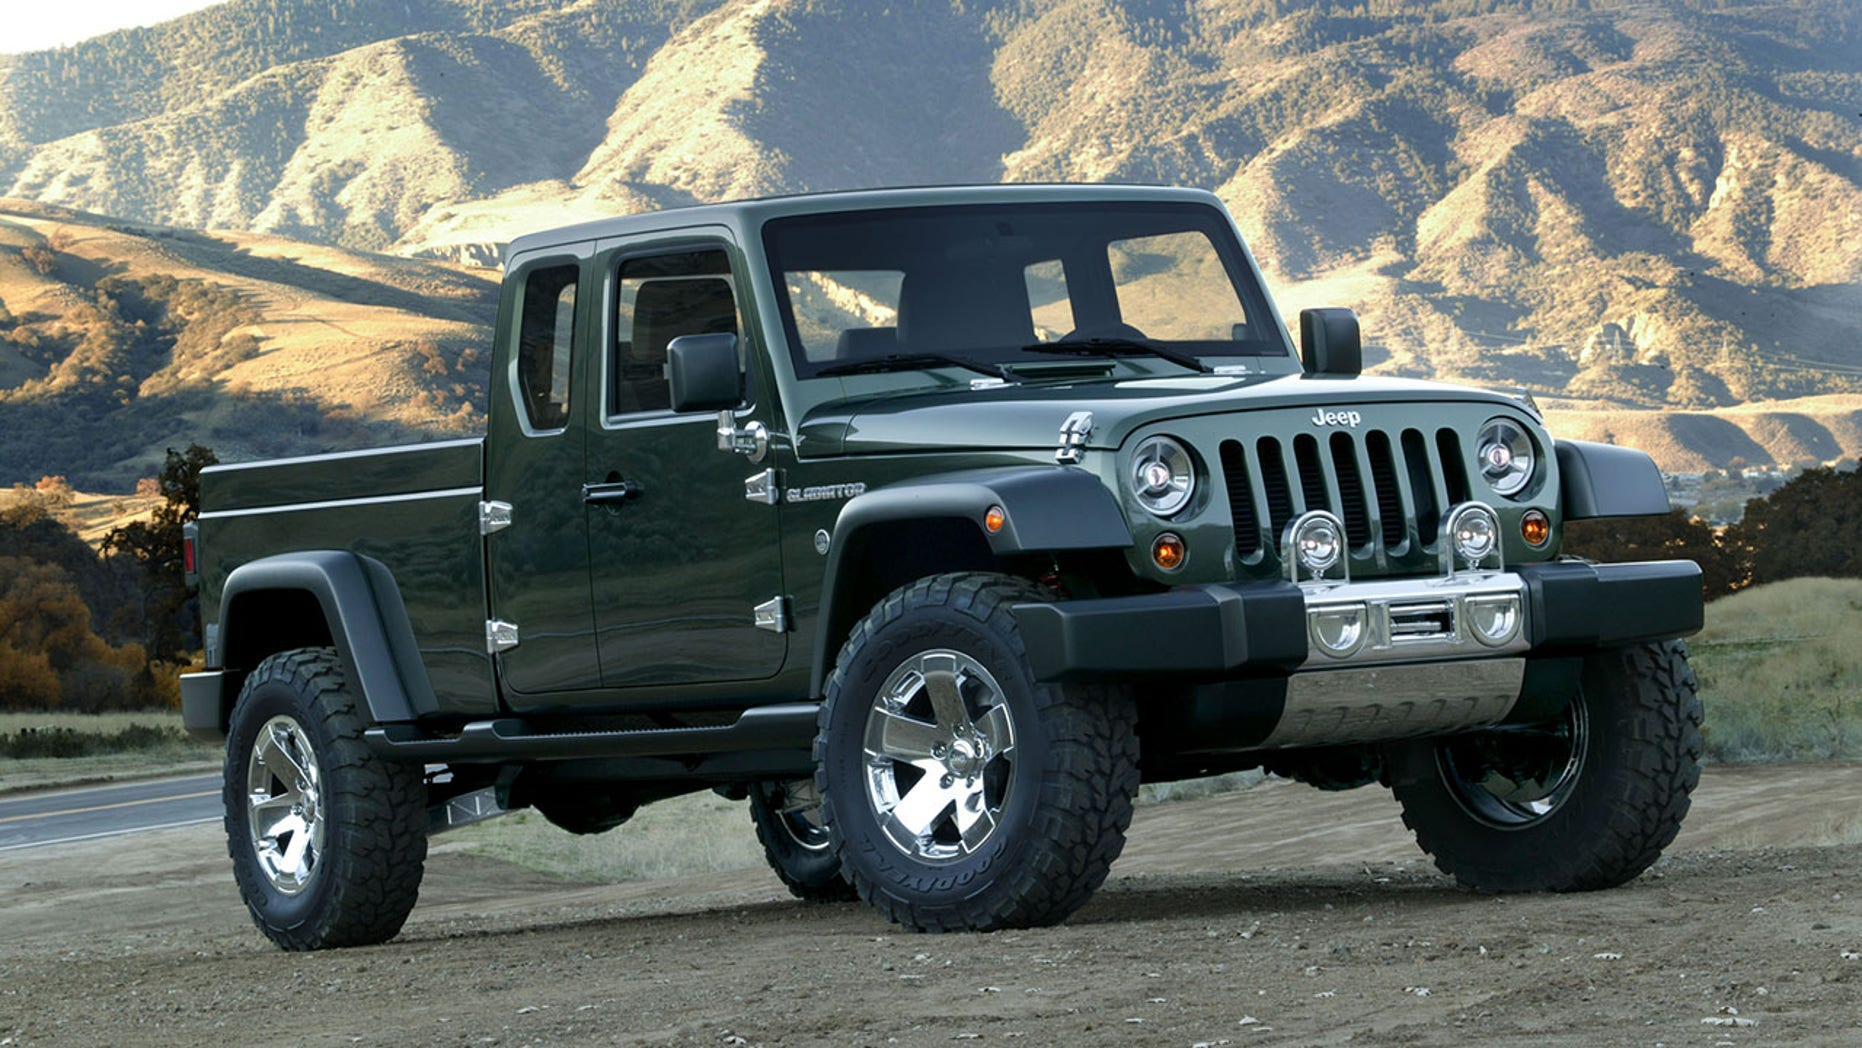 The 2005 Gladiator previewed the idea for the new truck